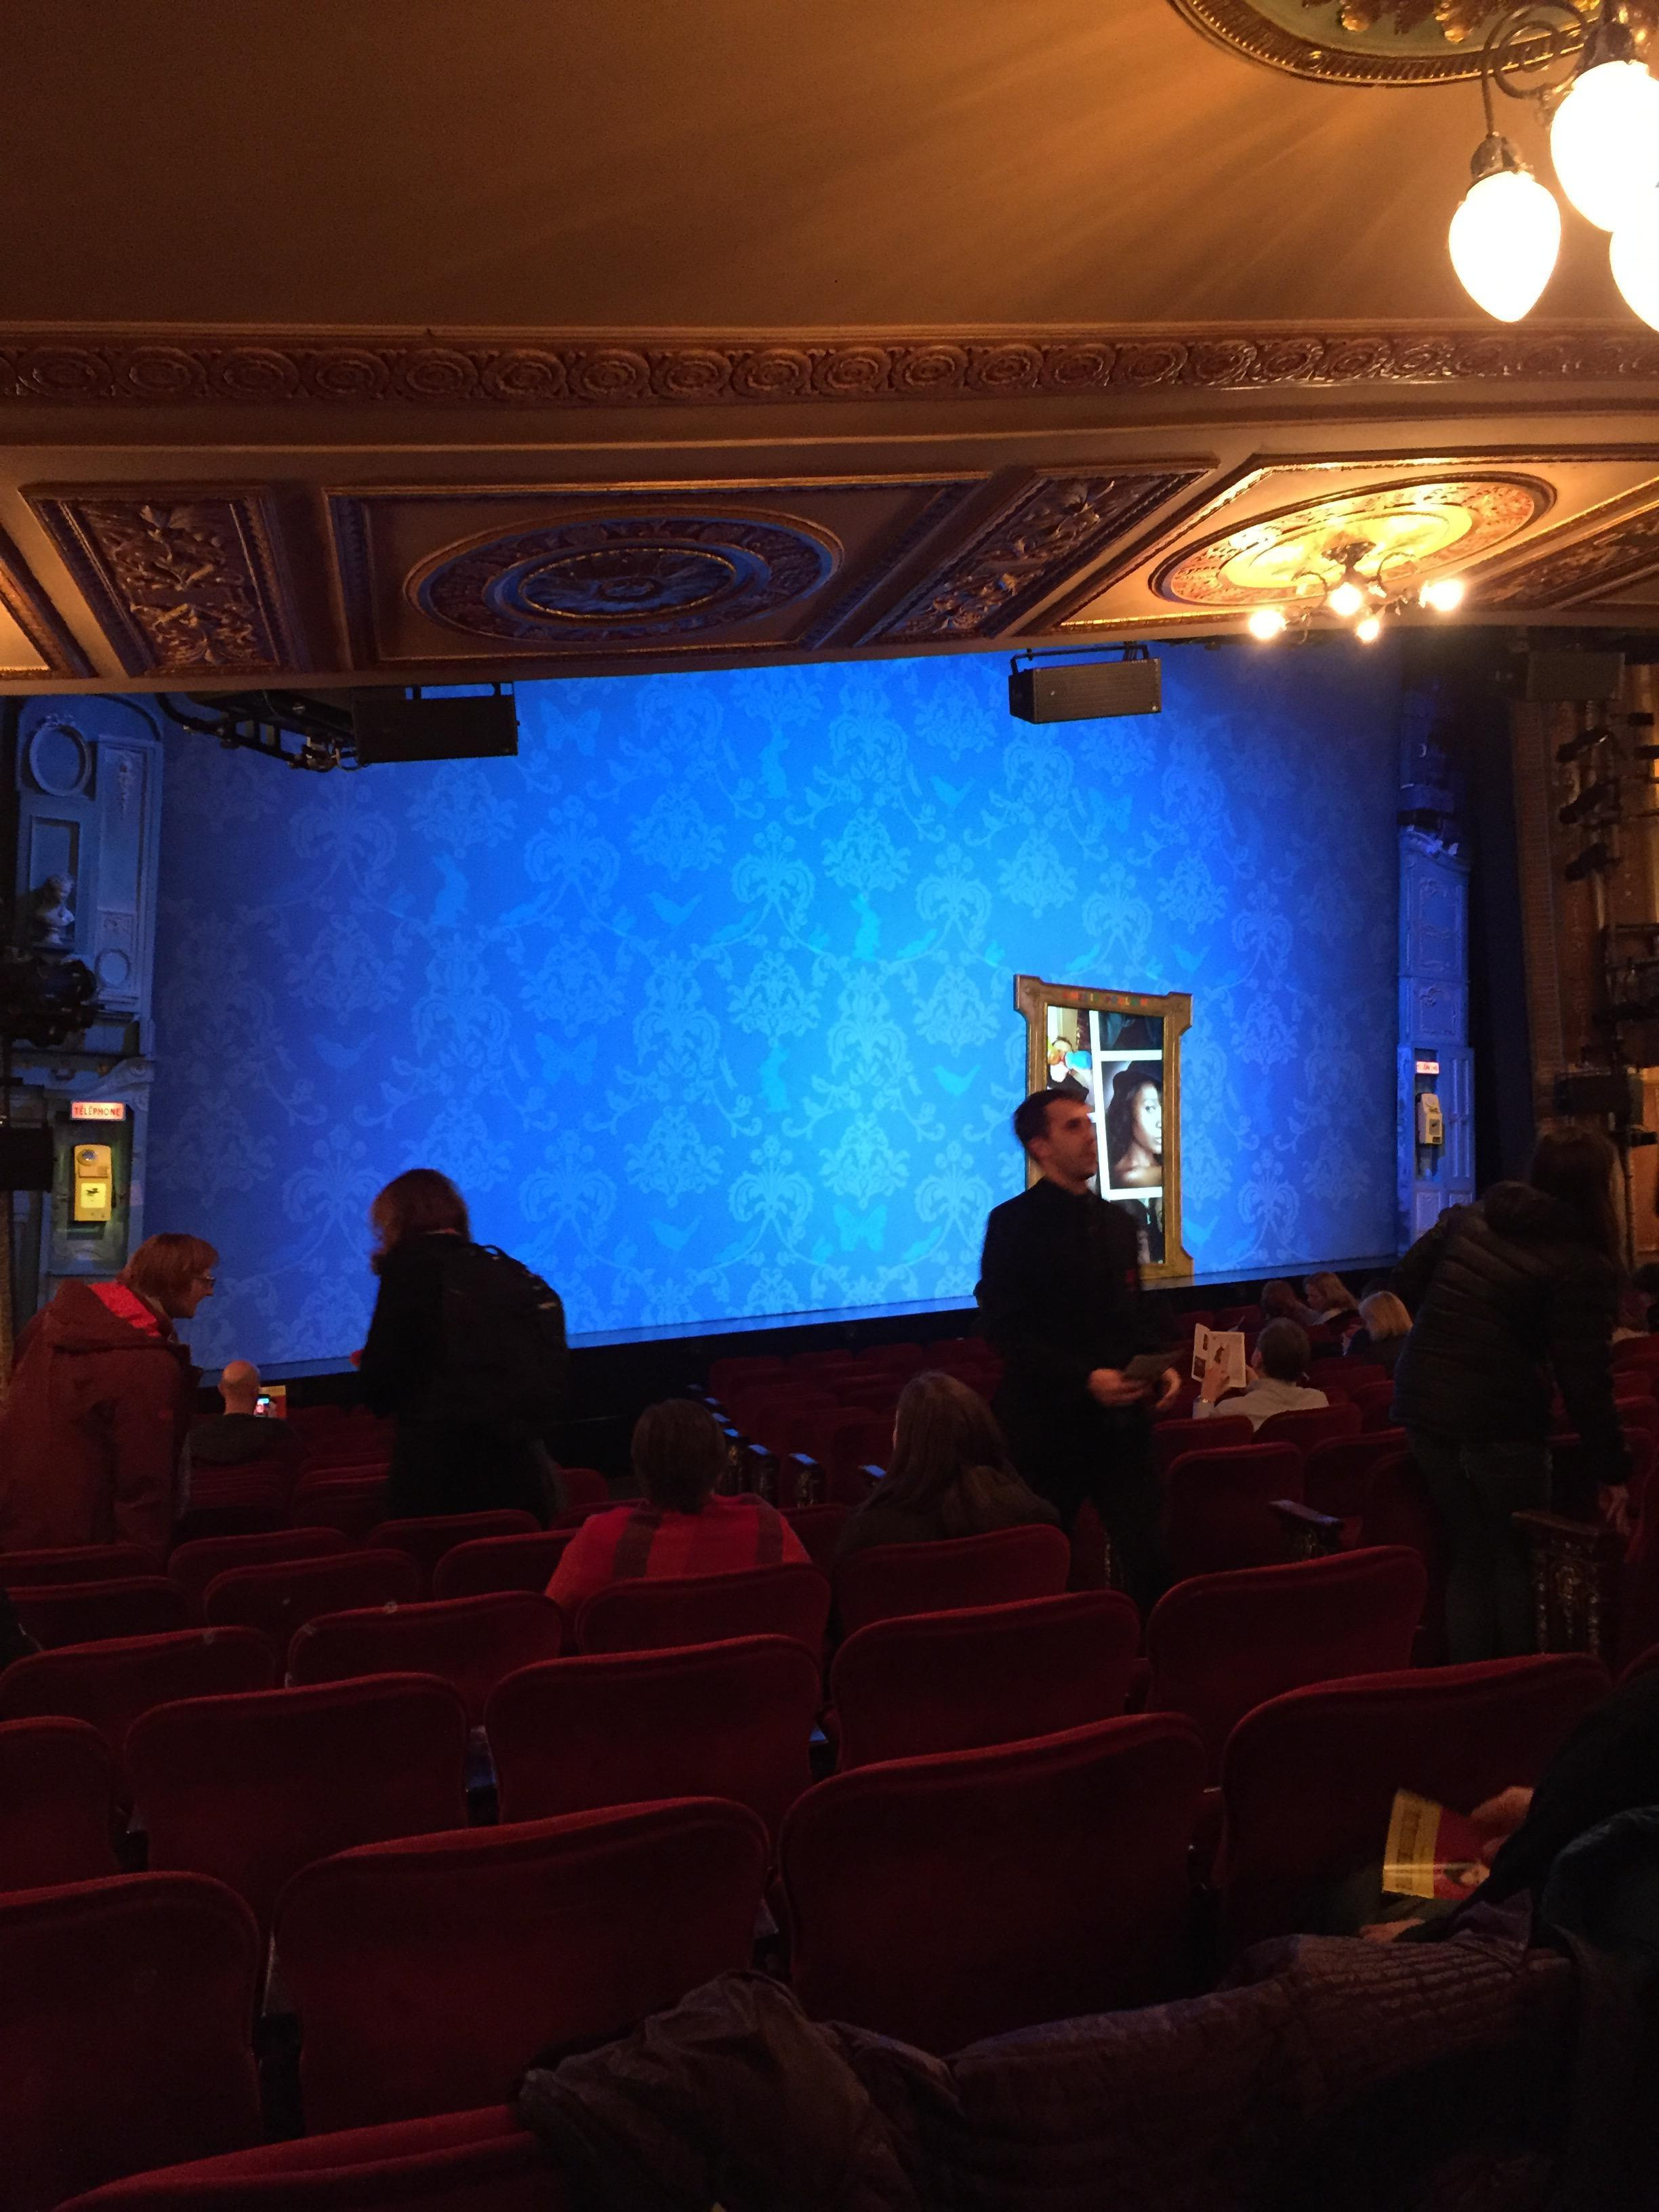 Walter Kerr Theatre Section OrchL Row R Seat 13